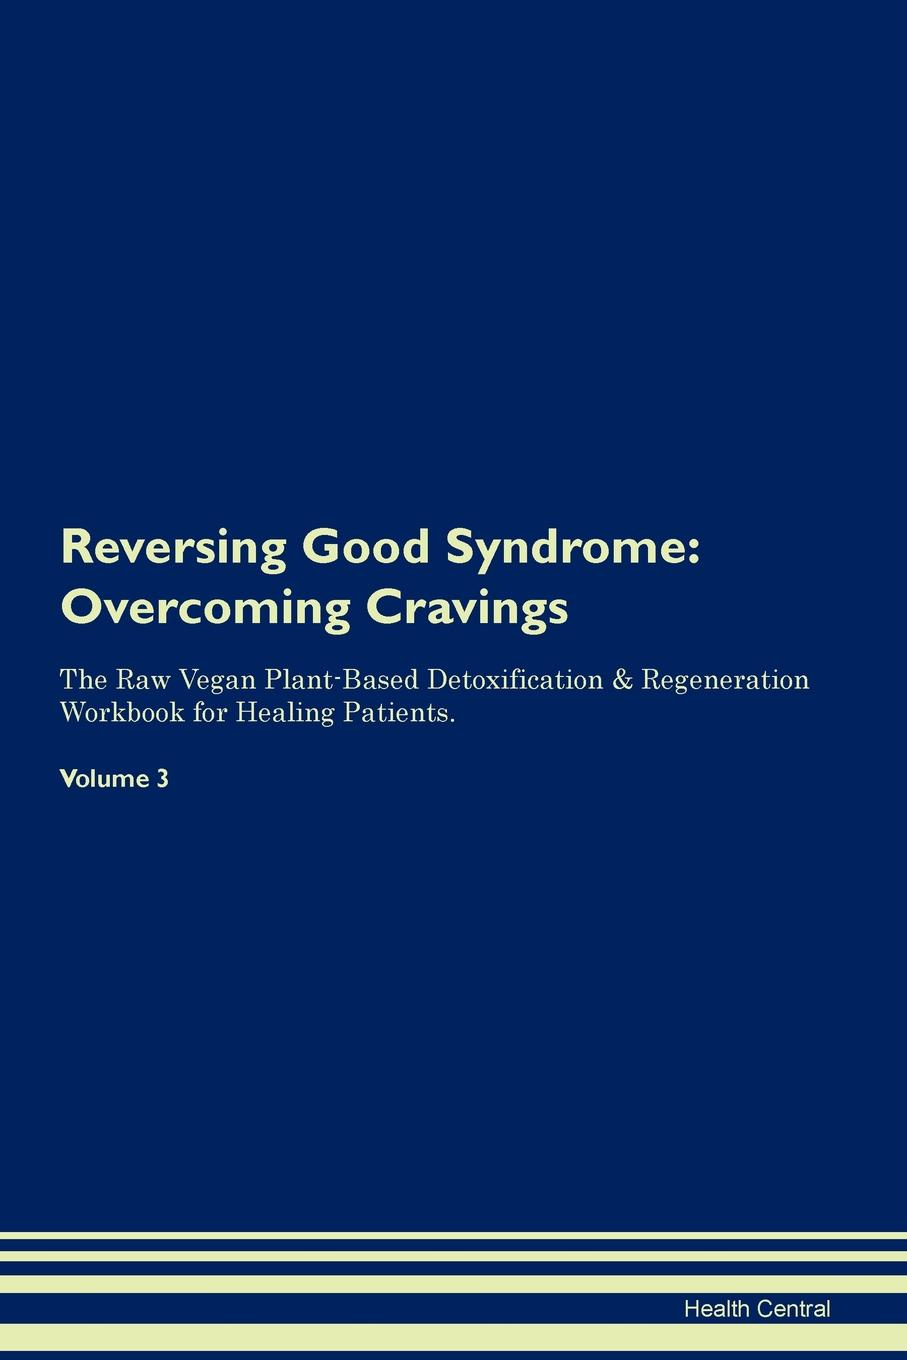 Health Central Reversing Good Syndrome. Overcoming Cravings The Raw Vegan Plant-Based Detoxification . Regeneration Workbook for Healing Patients. Volume 3 fingerboard workbook for the ninth tenth and eleventh positions map the viola for good volume 7